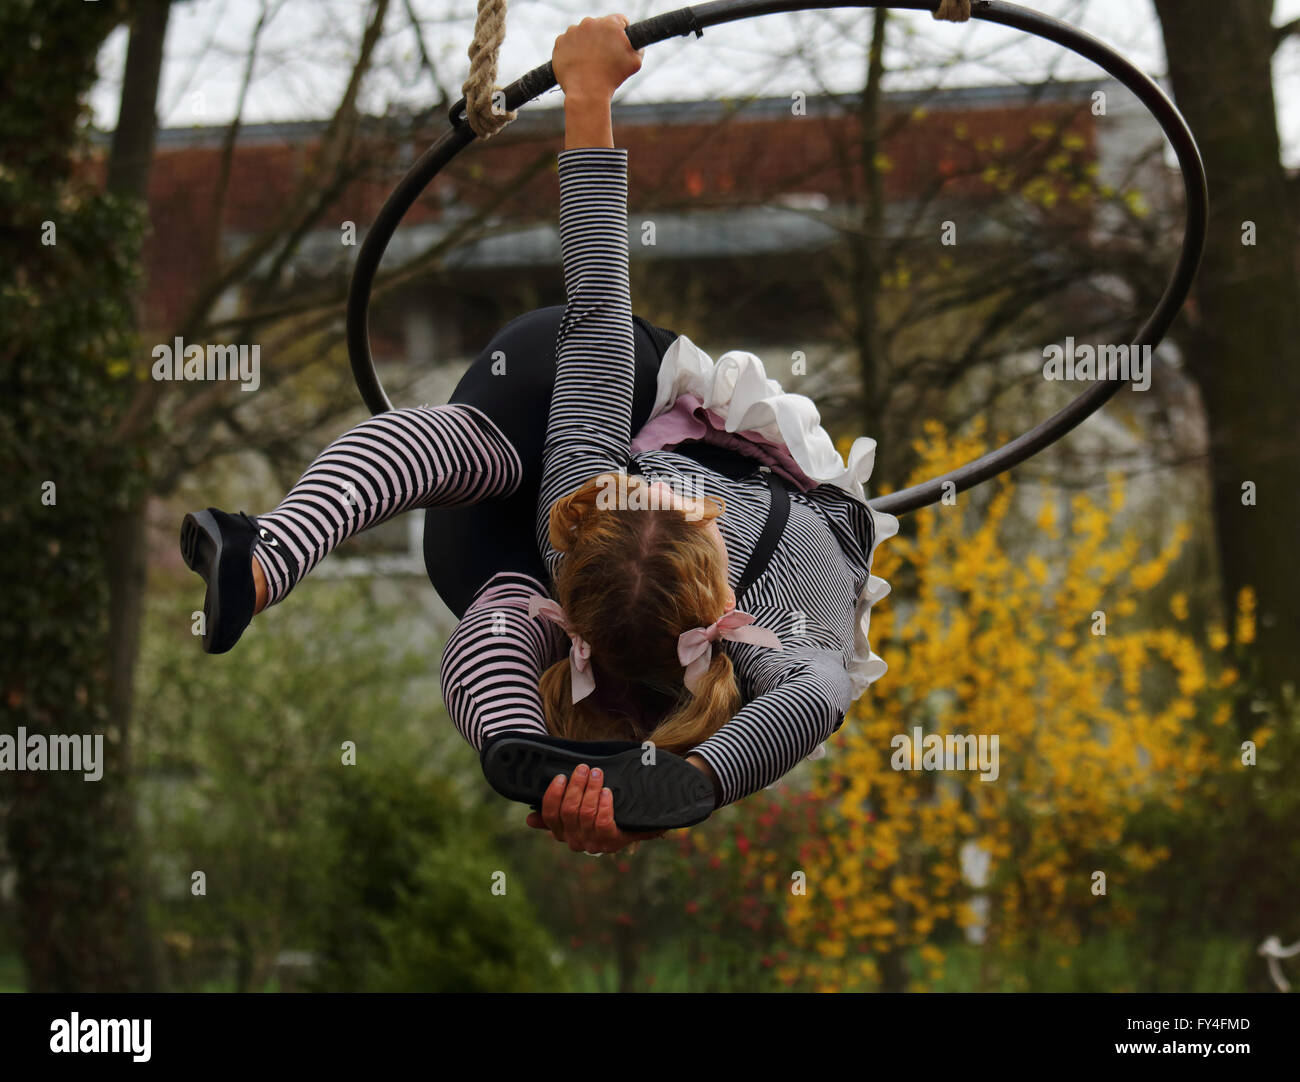 Female acrobat performing outdoor in a large hanging ring - Stock Image